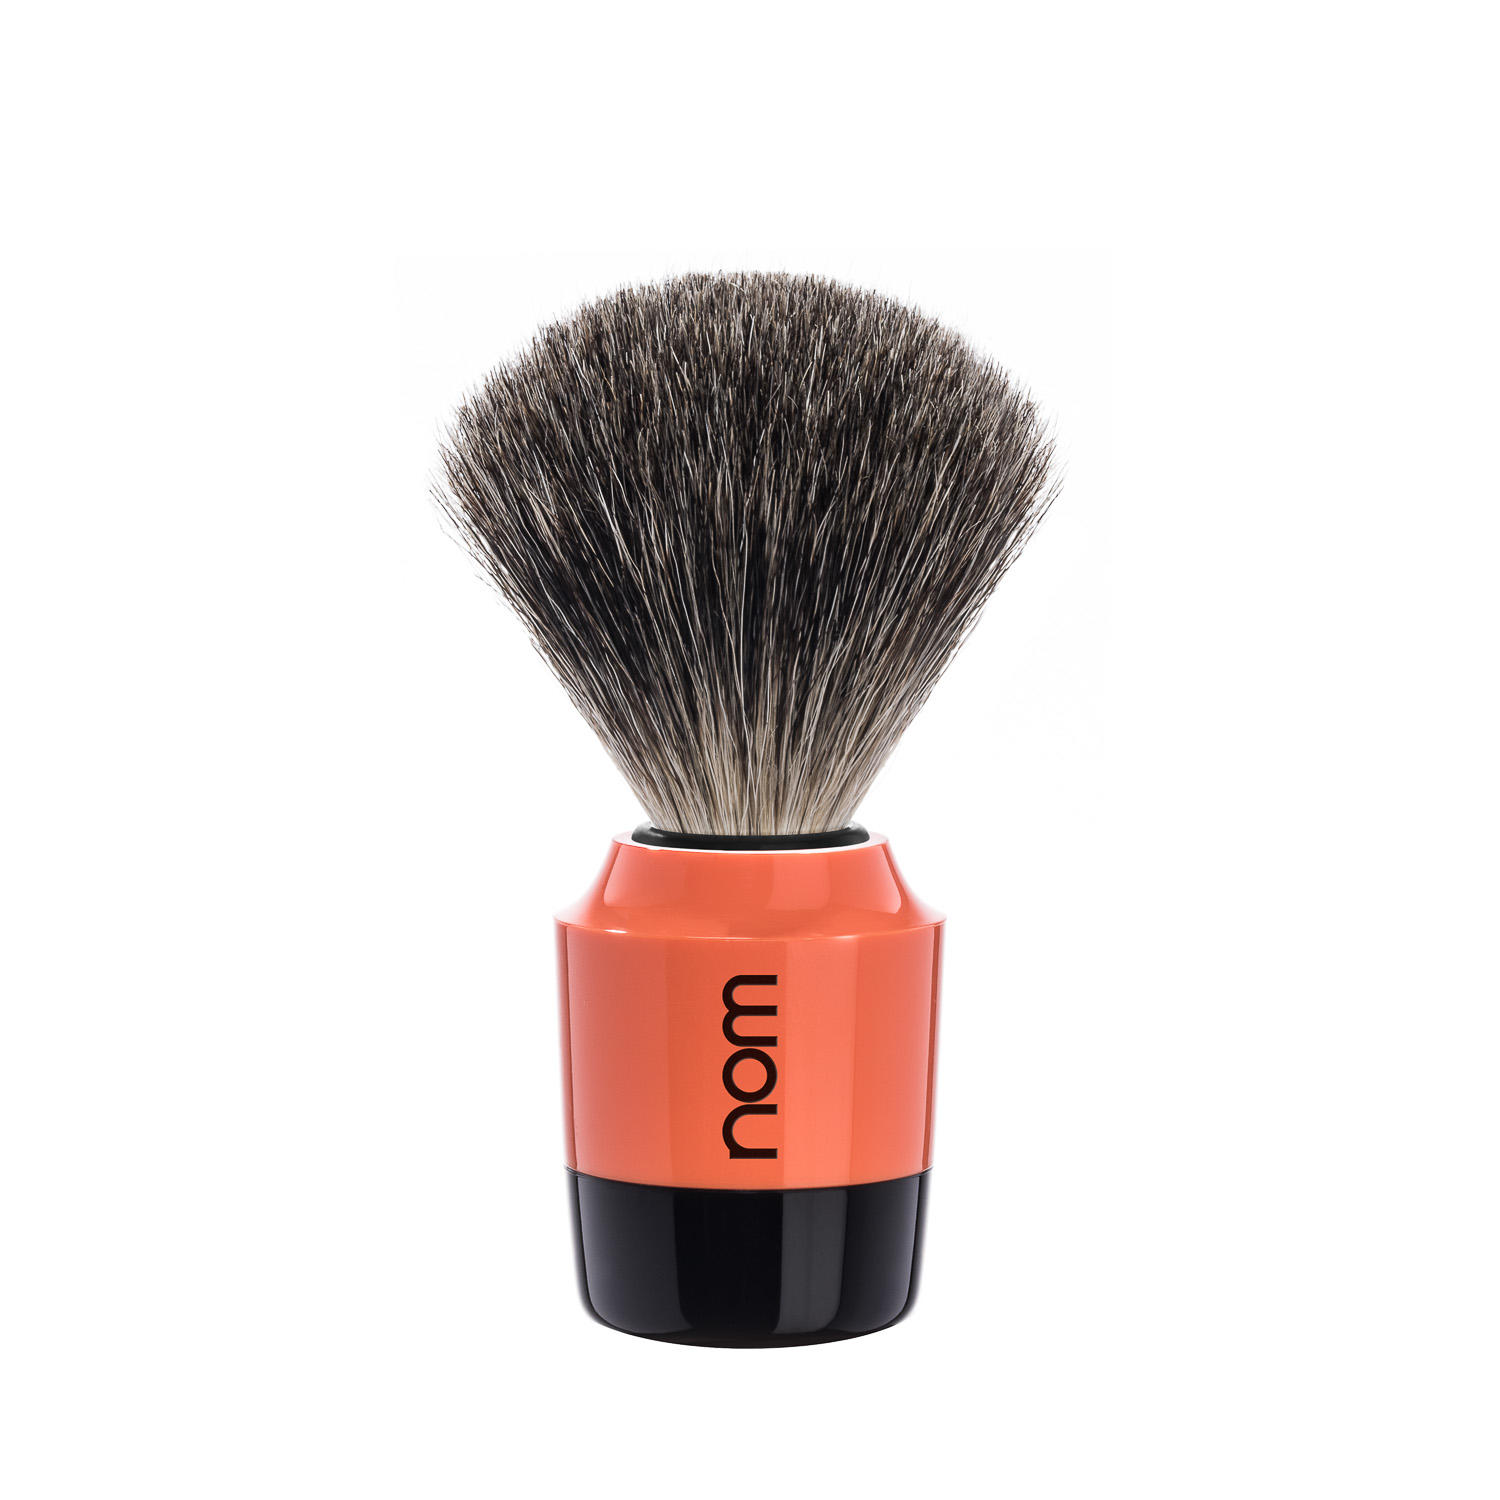 MARTEN81CO NOM, MARTEN coral, pure badger shaving brush